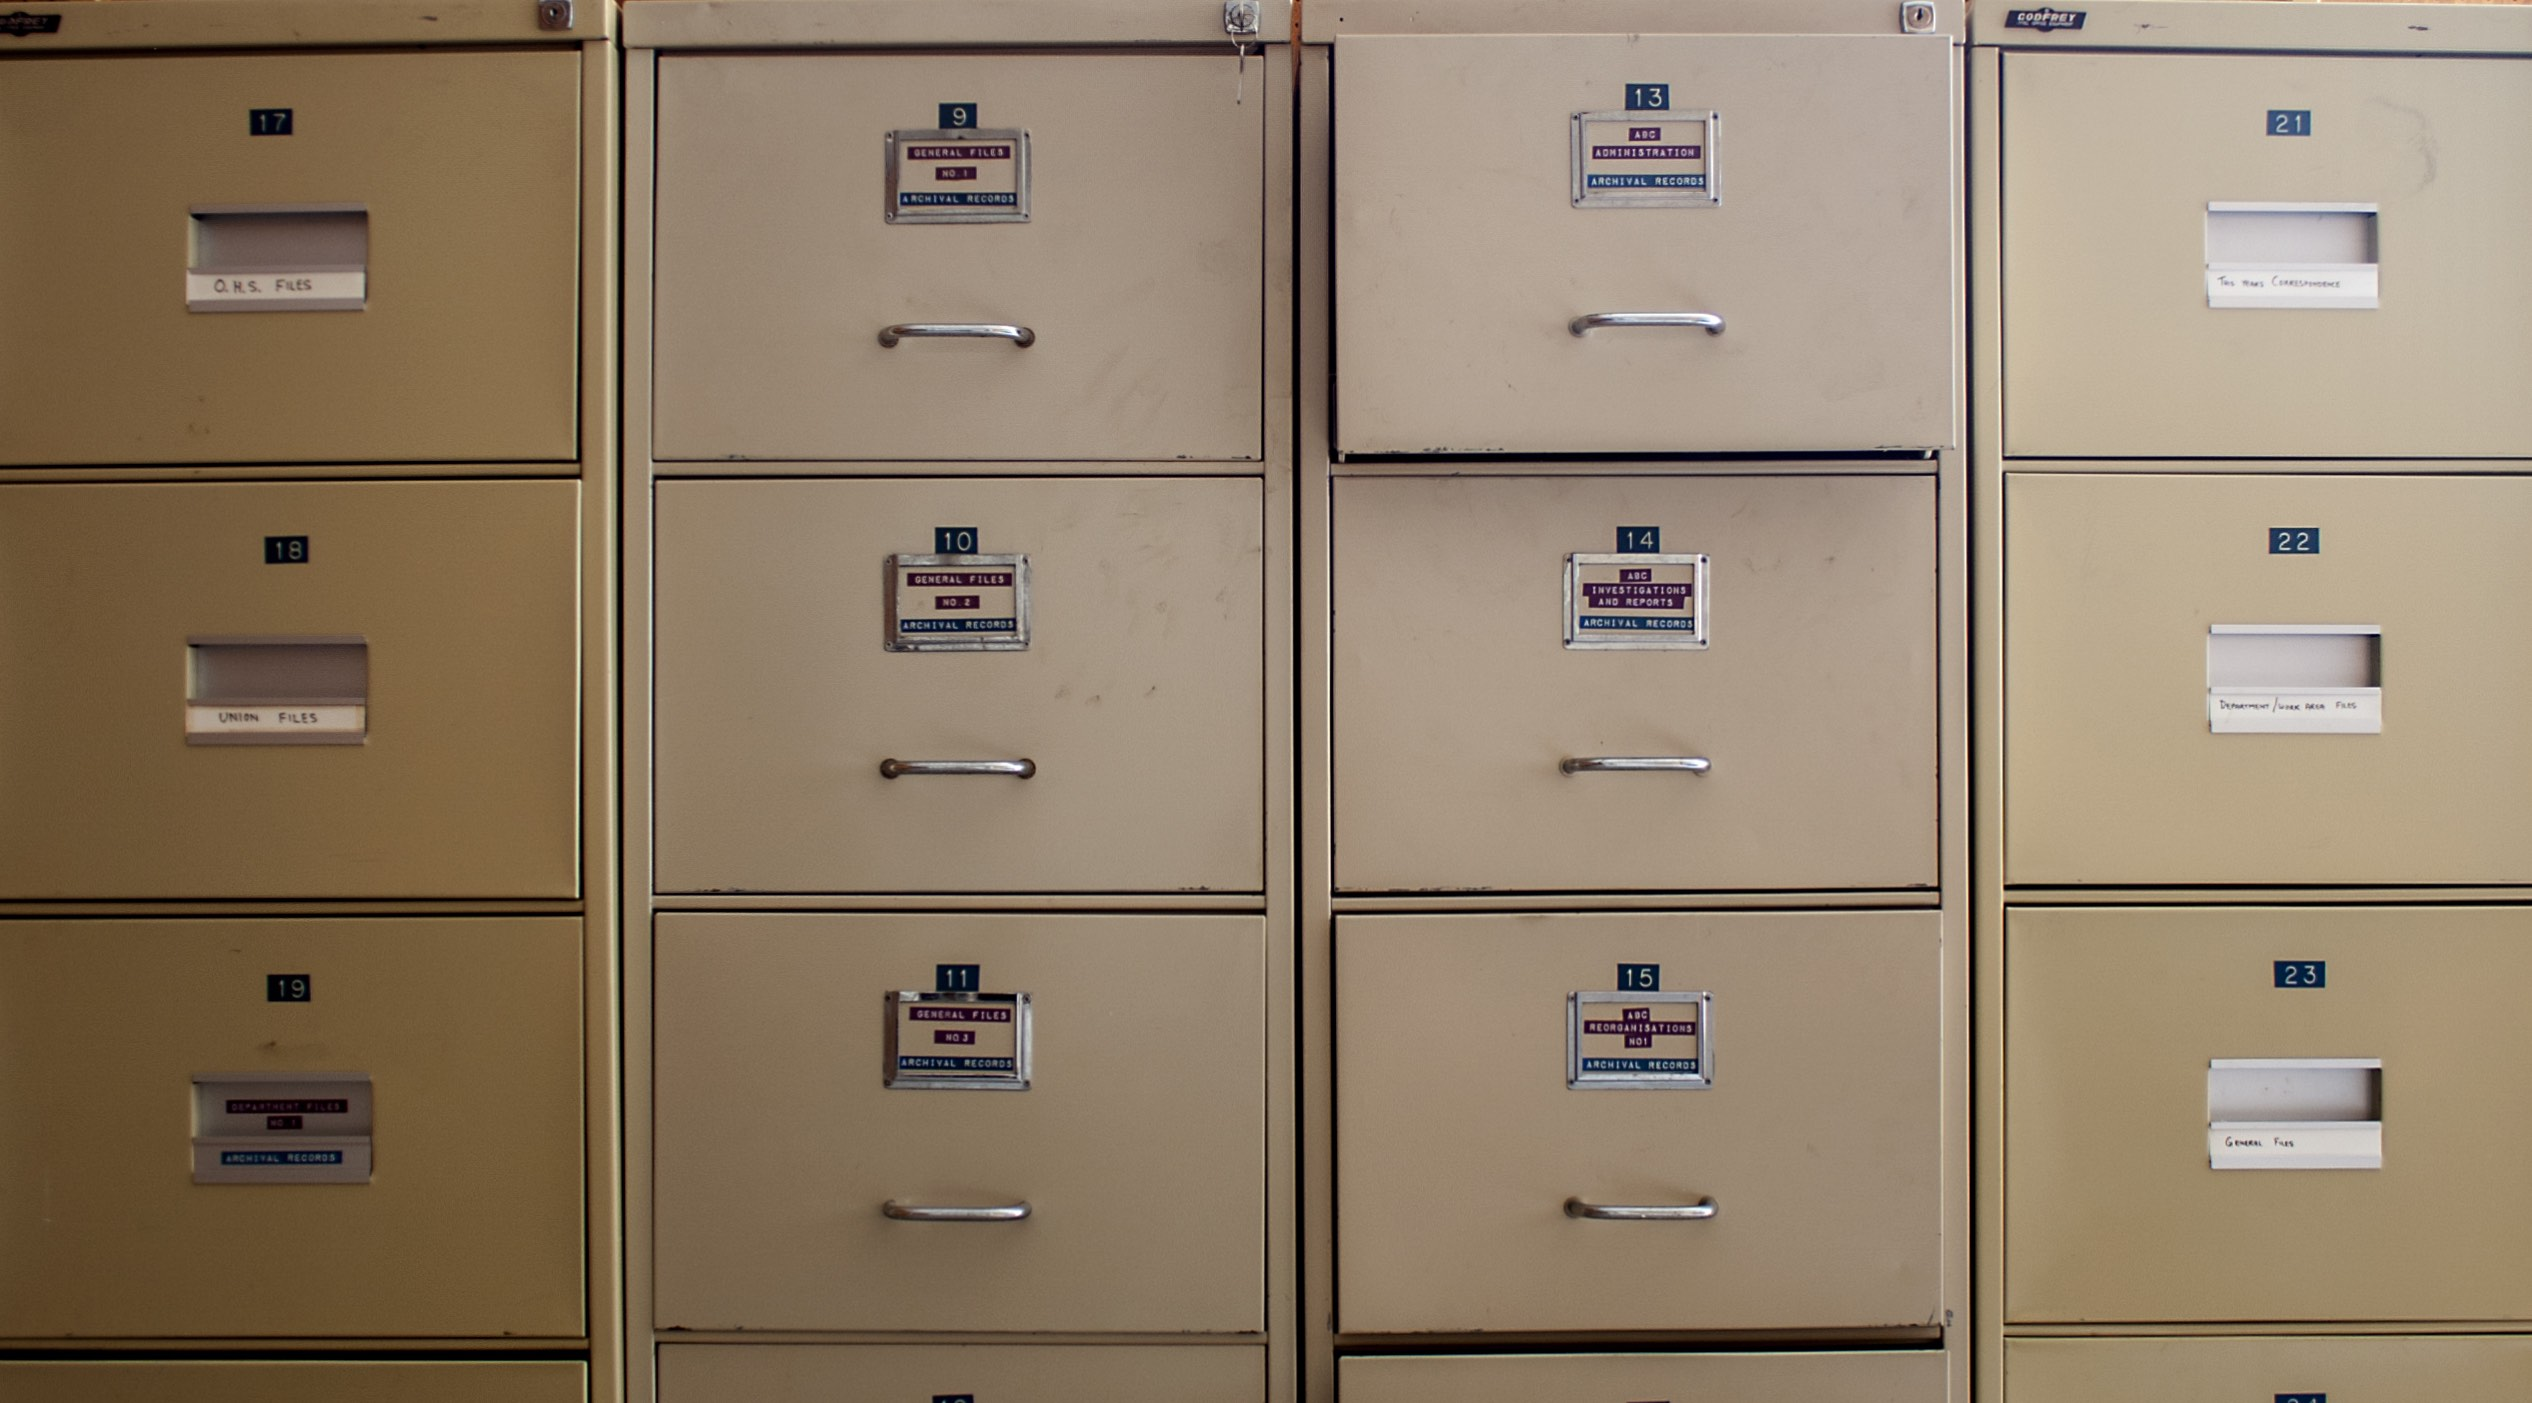 How to Hold Files in a Filing Cabinet